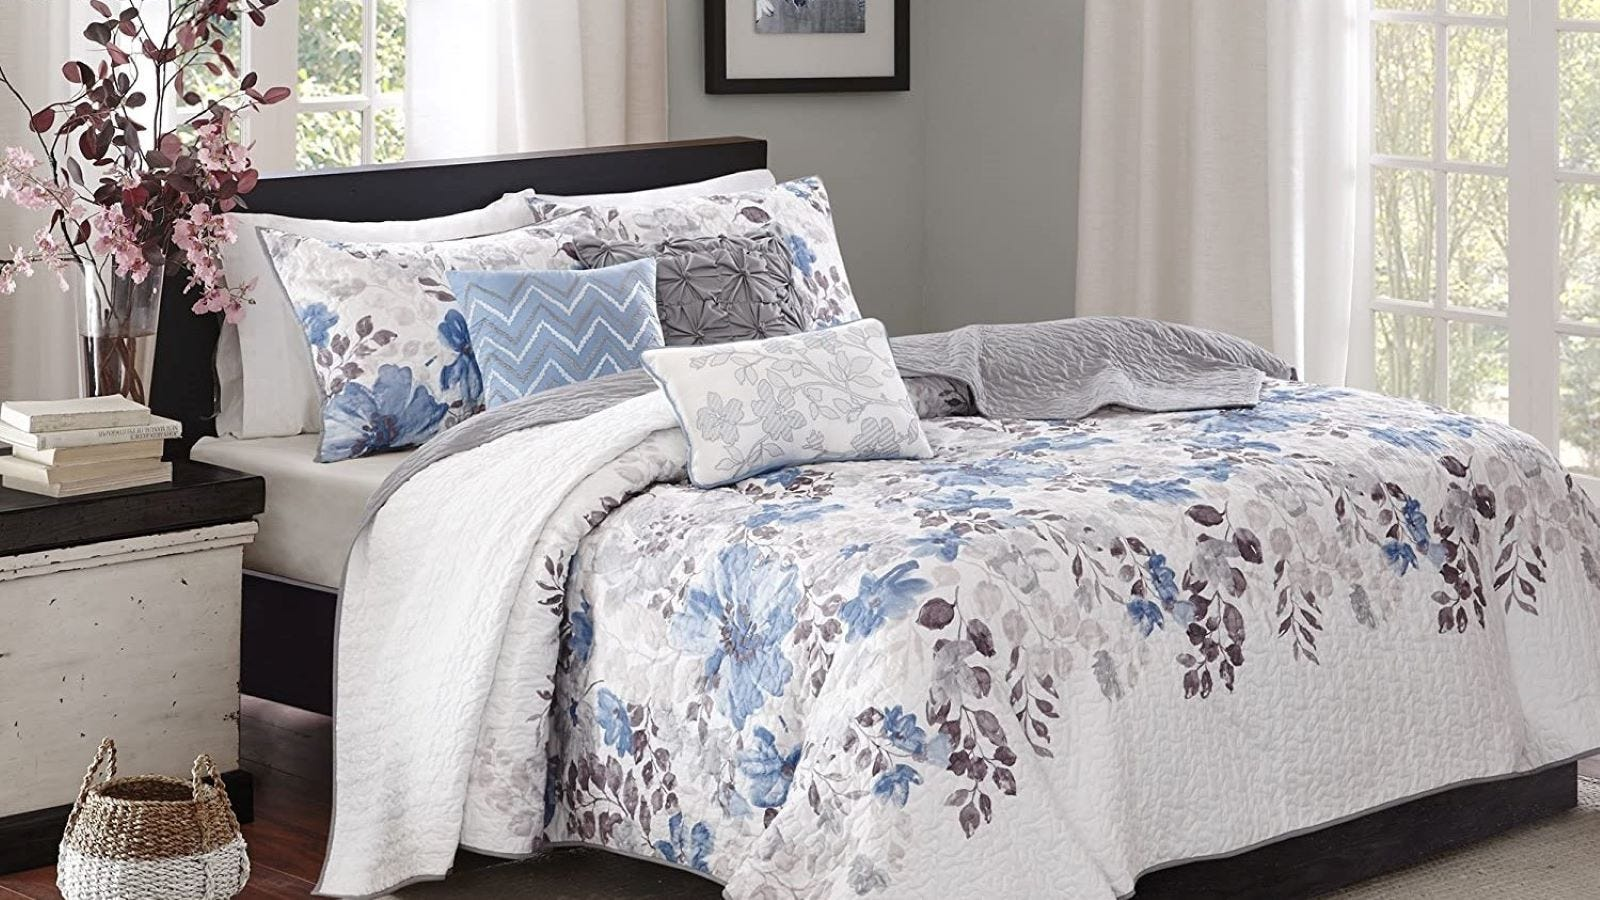 Madison Park Modern Quilt and throw pillows in Luna Floral Blue on a Queen size bed.